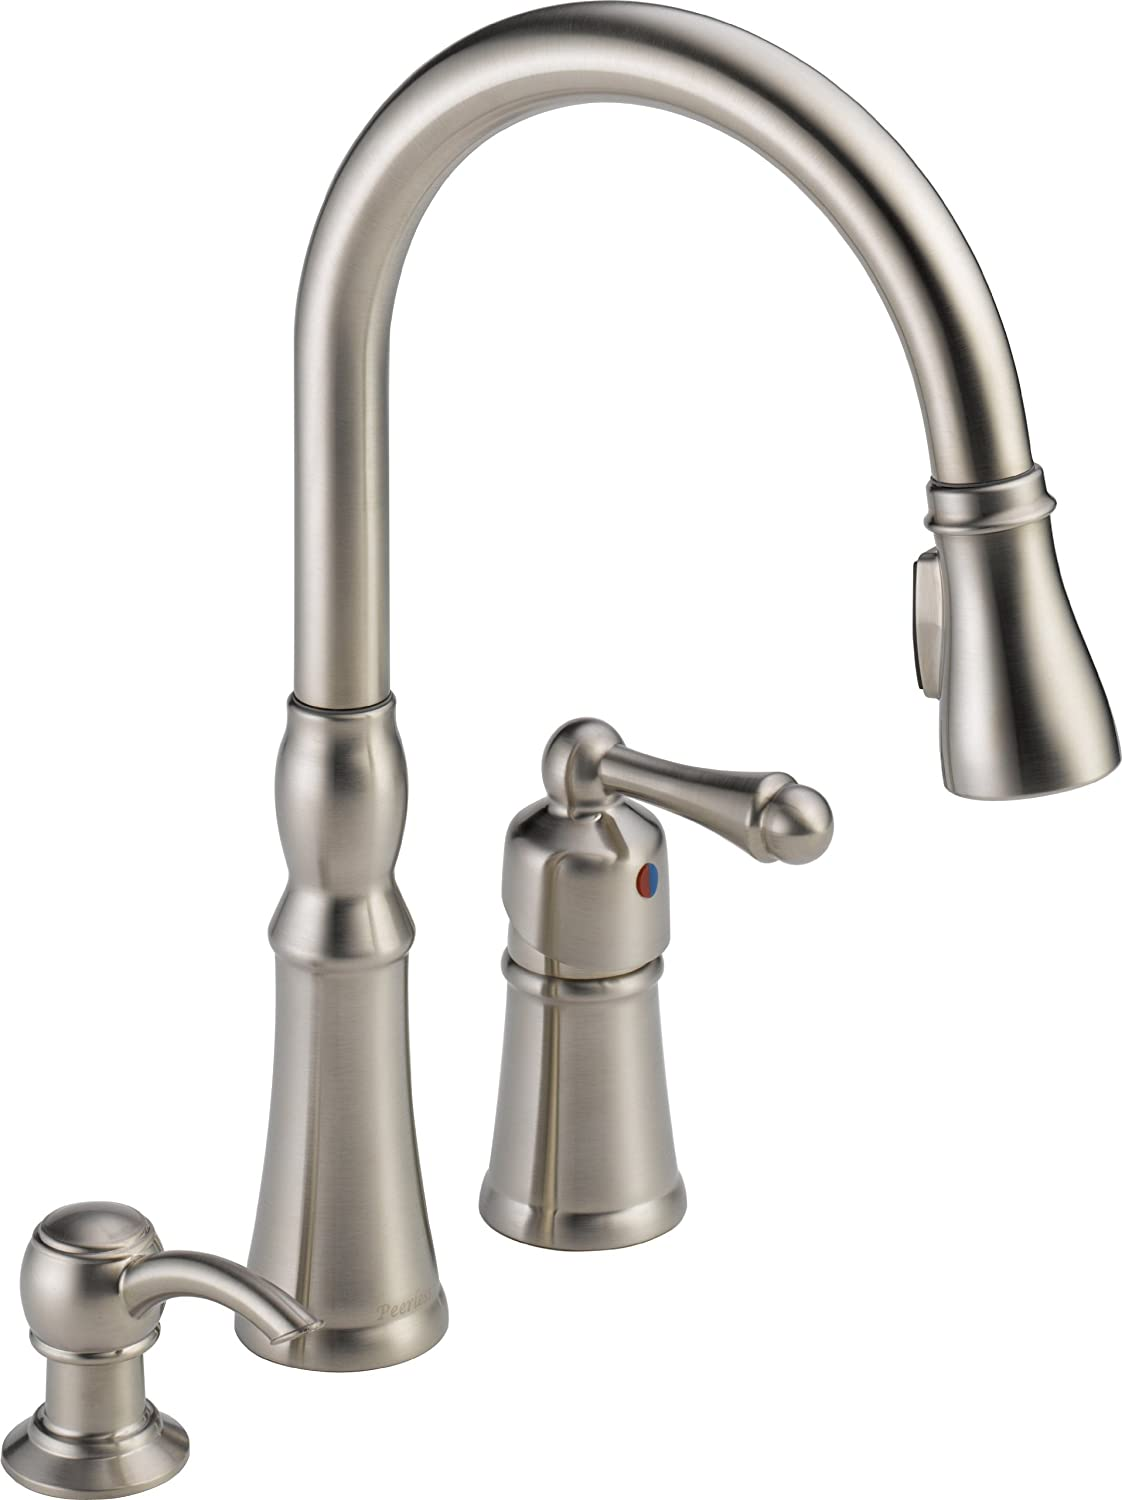 Peerless Single-Handle Kitchen Sink Faucet with Pull Down Sprayer and Soap Dispenser, Stainless P88105LF-SSSD